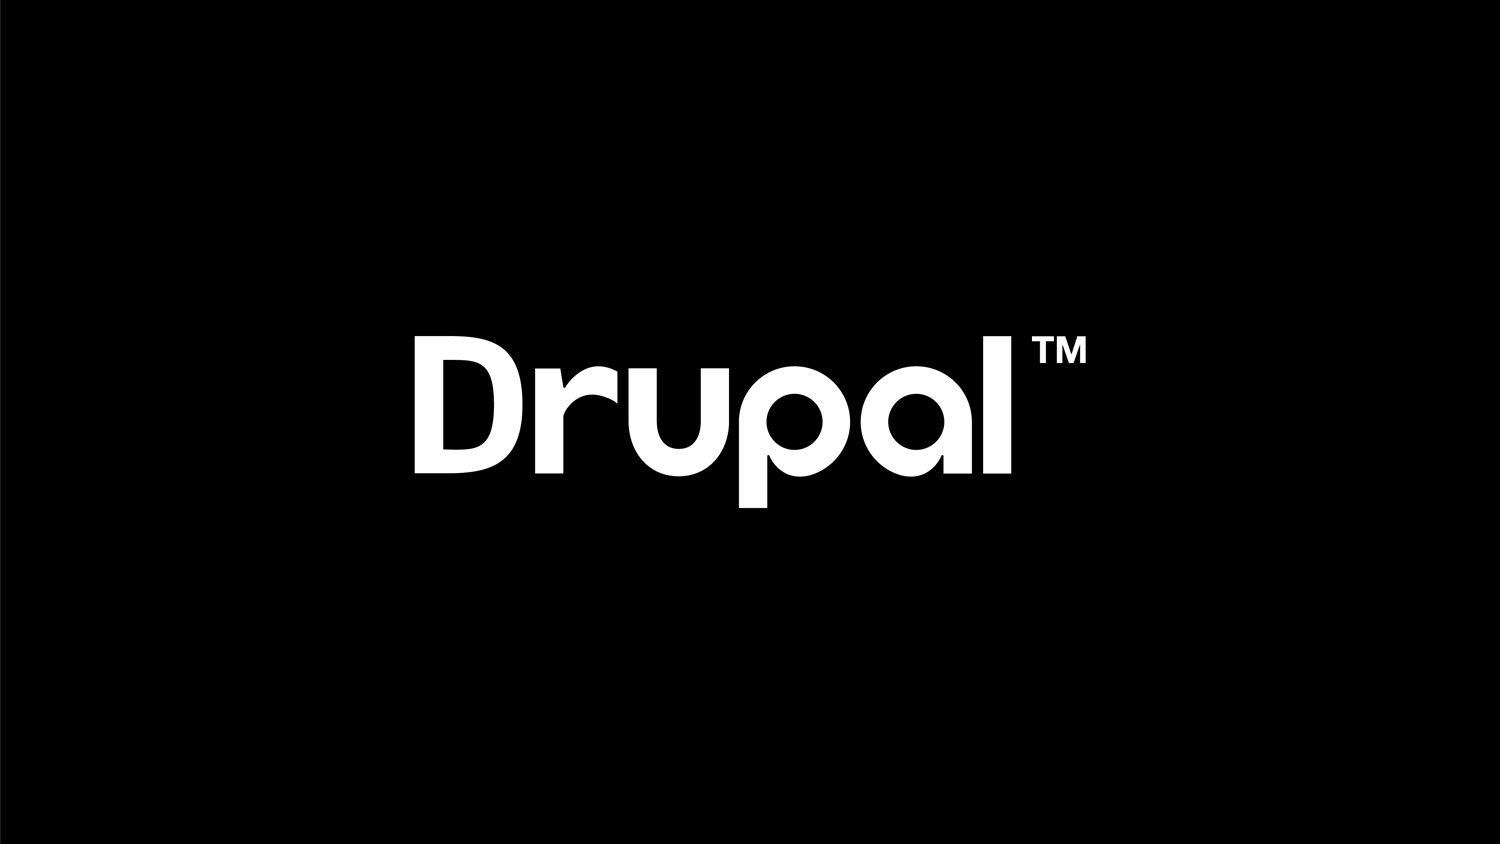 drupal vs wordpress brand development 1